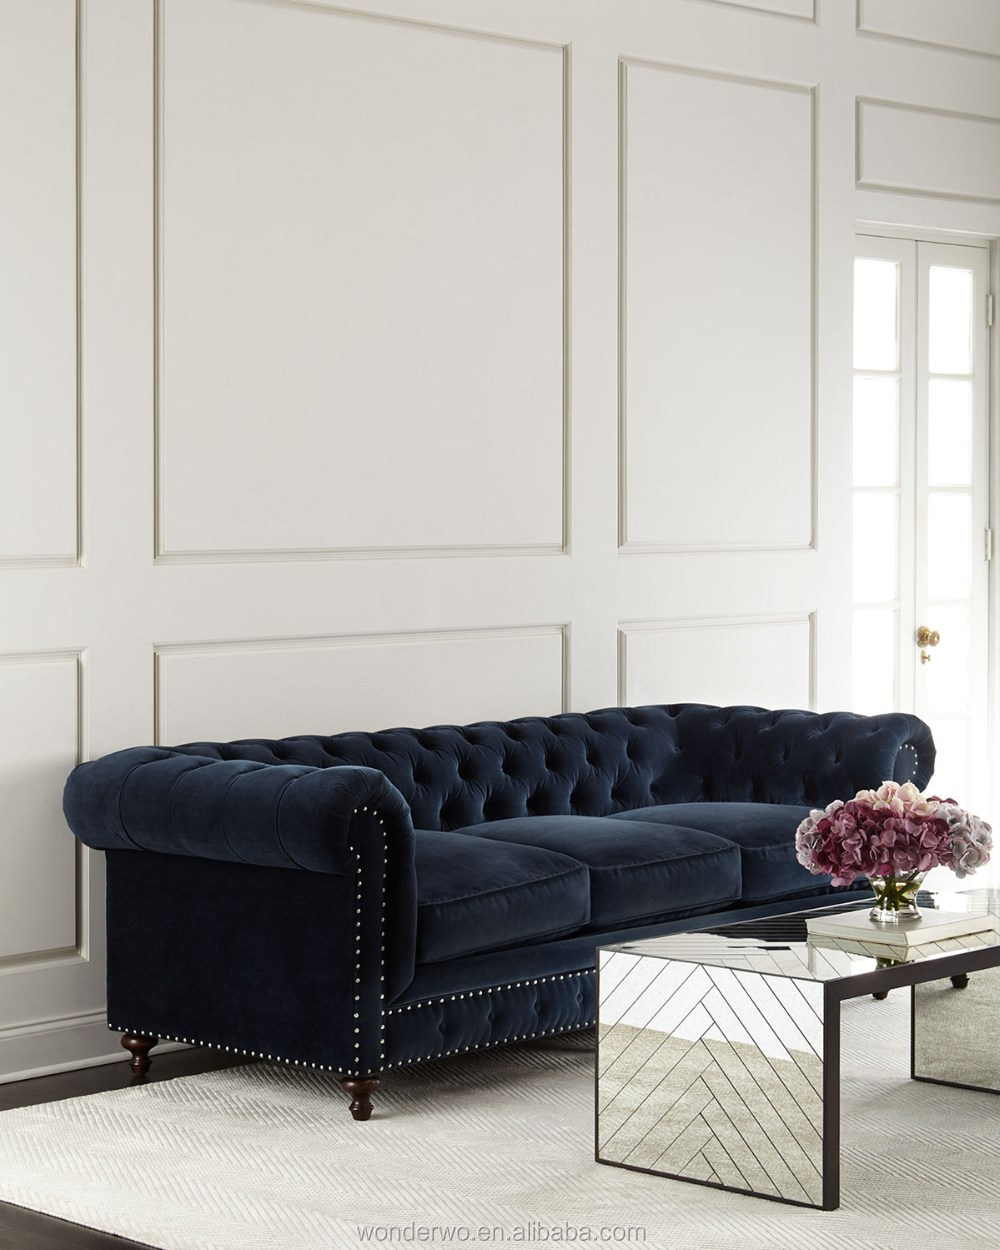 Navy blue cotton velvet upholstery classic chesterfield style sofa 3 cushion tufted sofa living room furniture